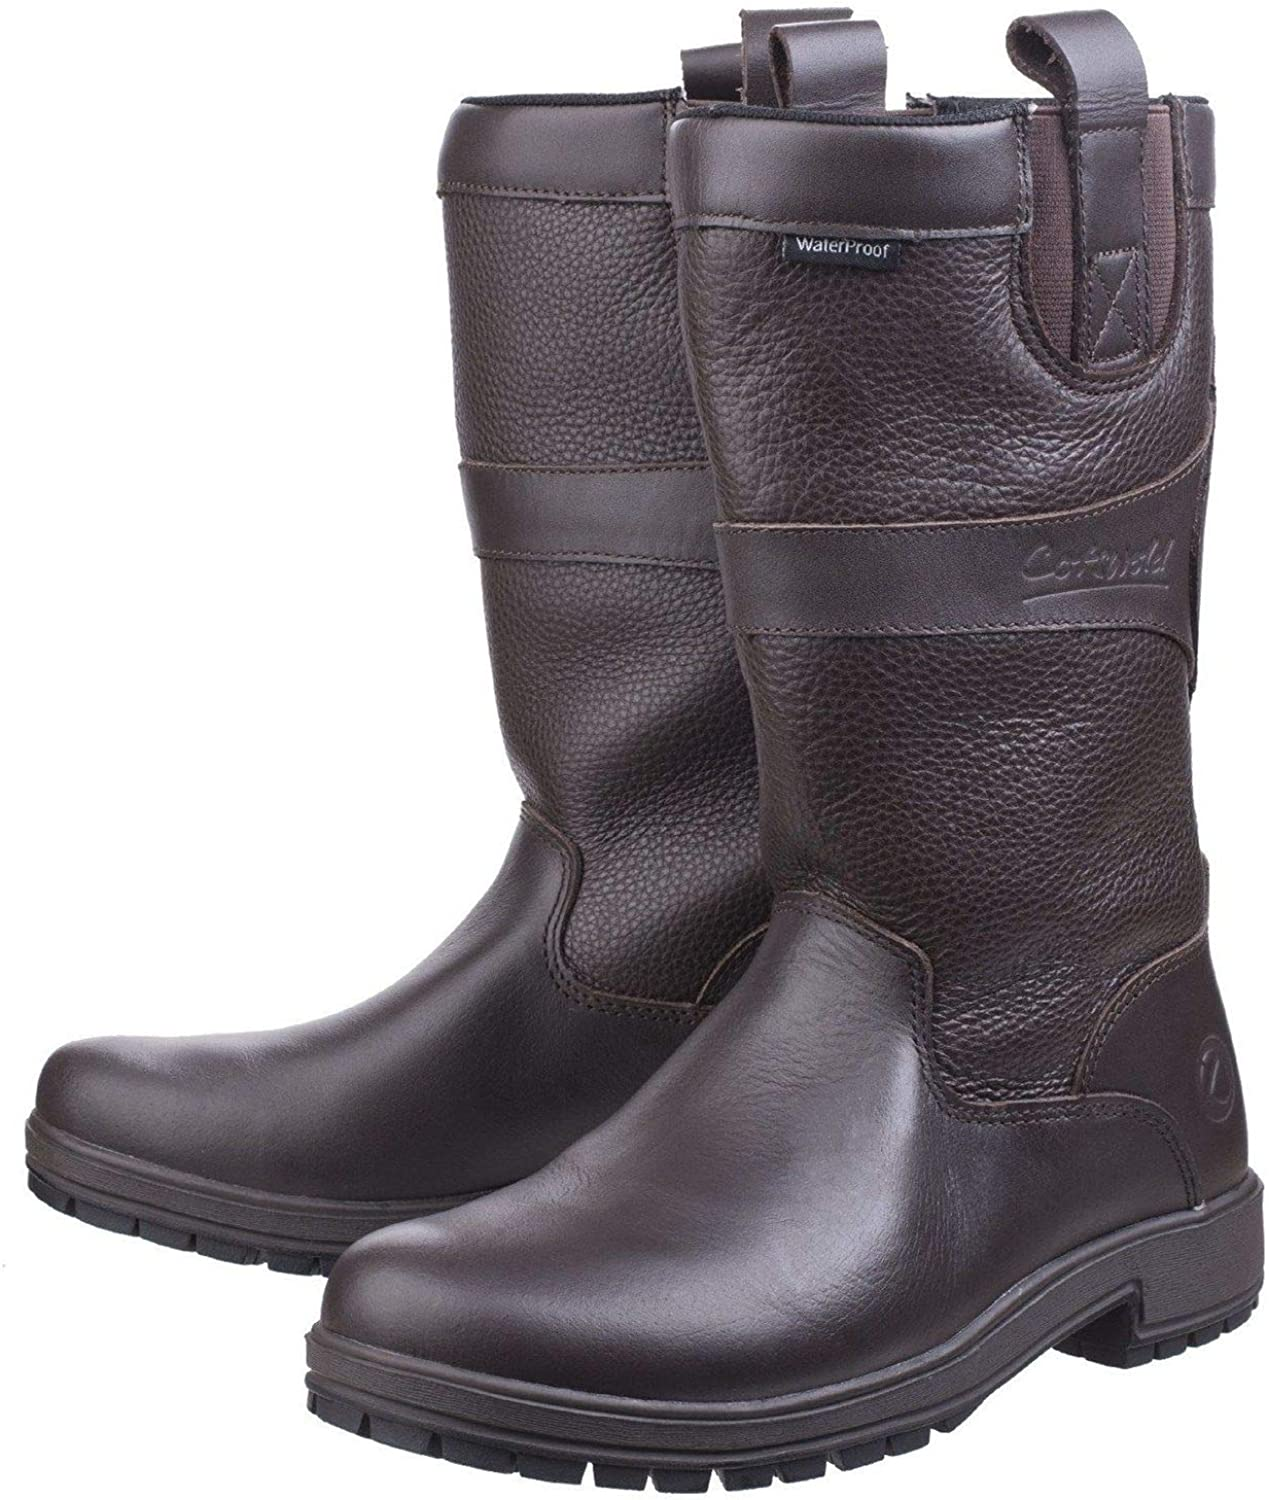 Cotswold Womens Ascot Waterproof Pull On Wellington Boot Brown Size UK 5 EU 38